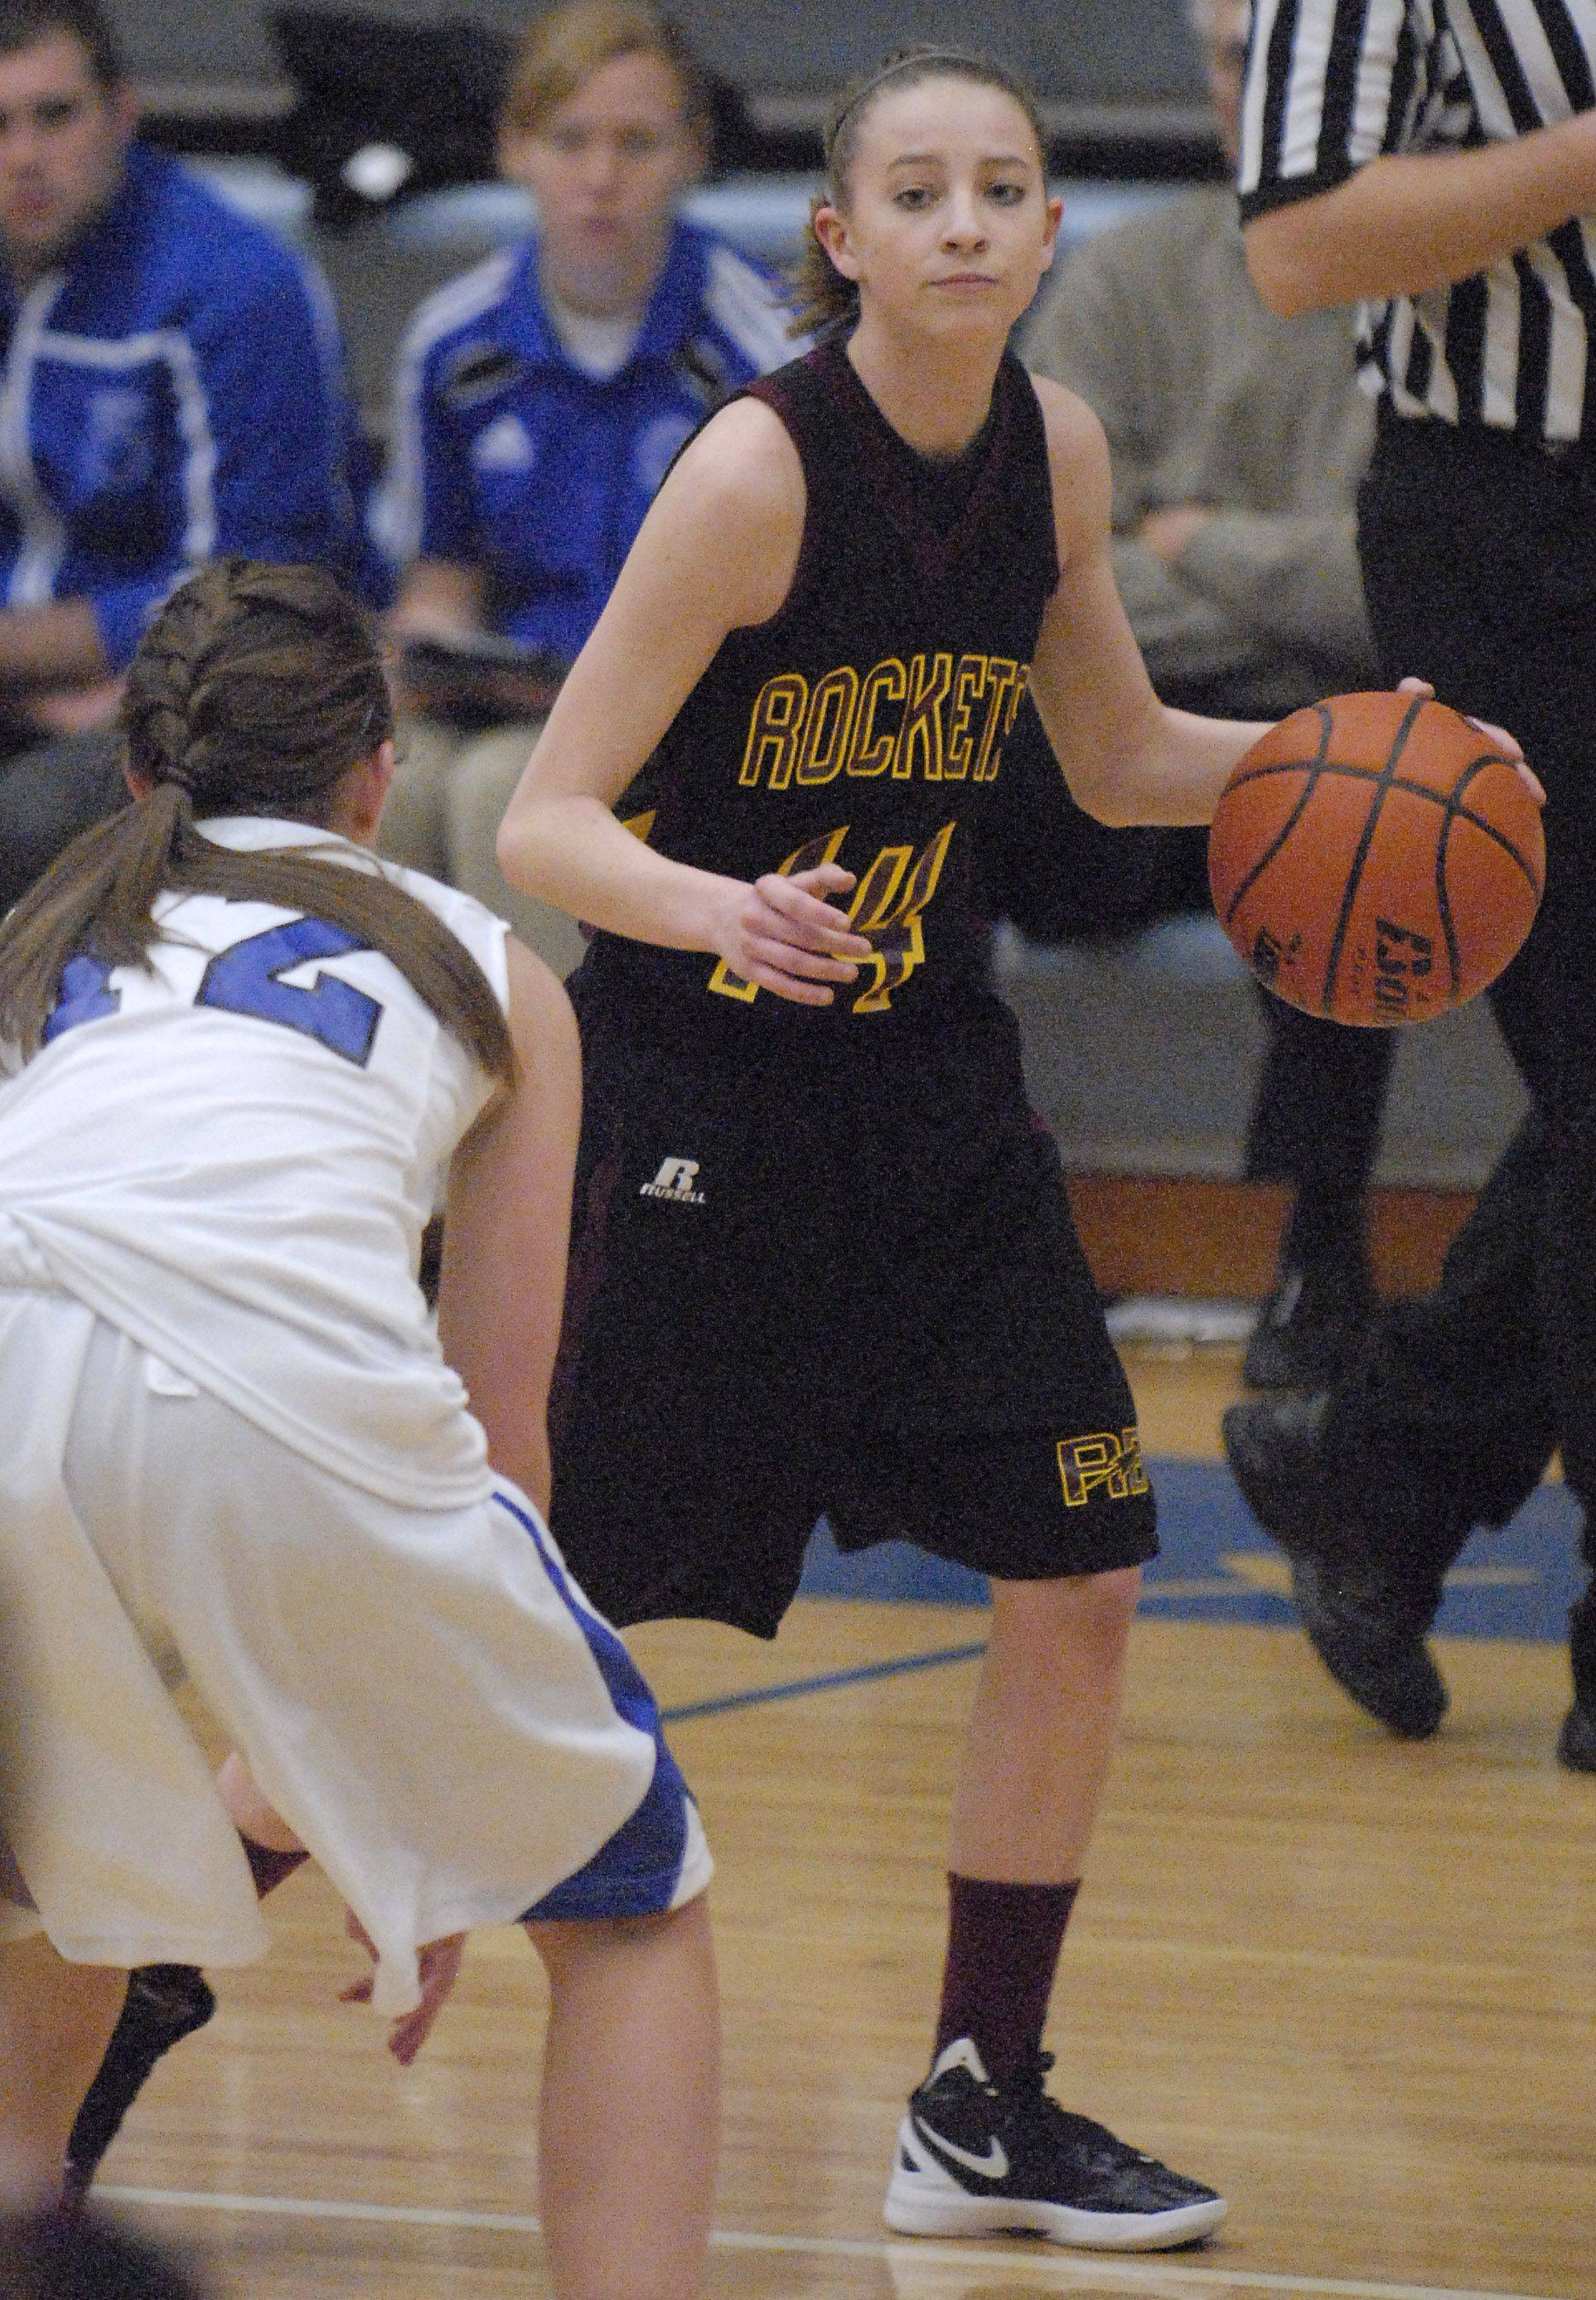 Burlington Central's Catherine Kaynish is ready for the next move by Richmond-Burton's Erin Thomas in the third quarter on Saturday.